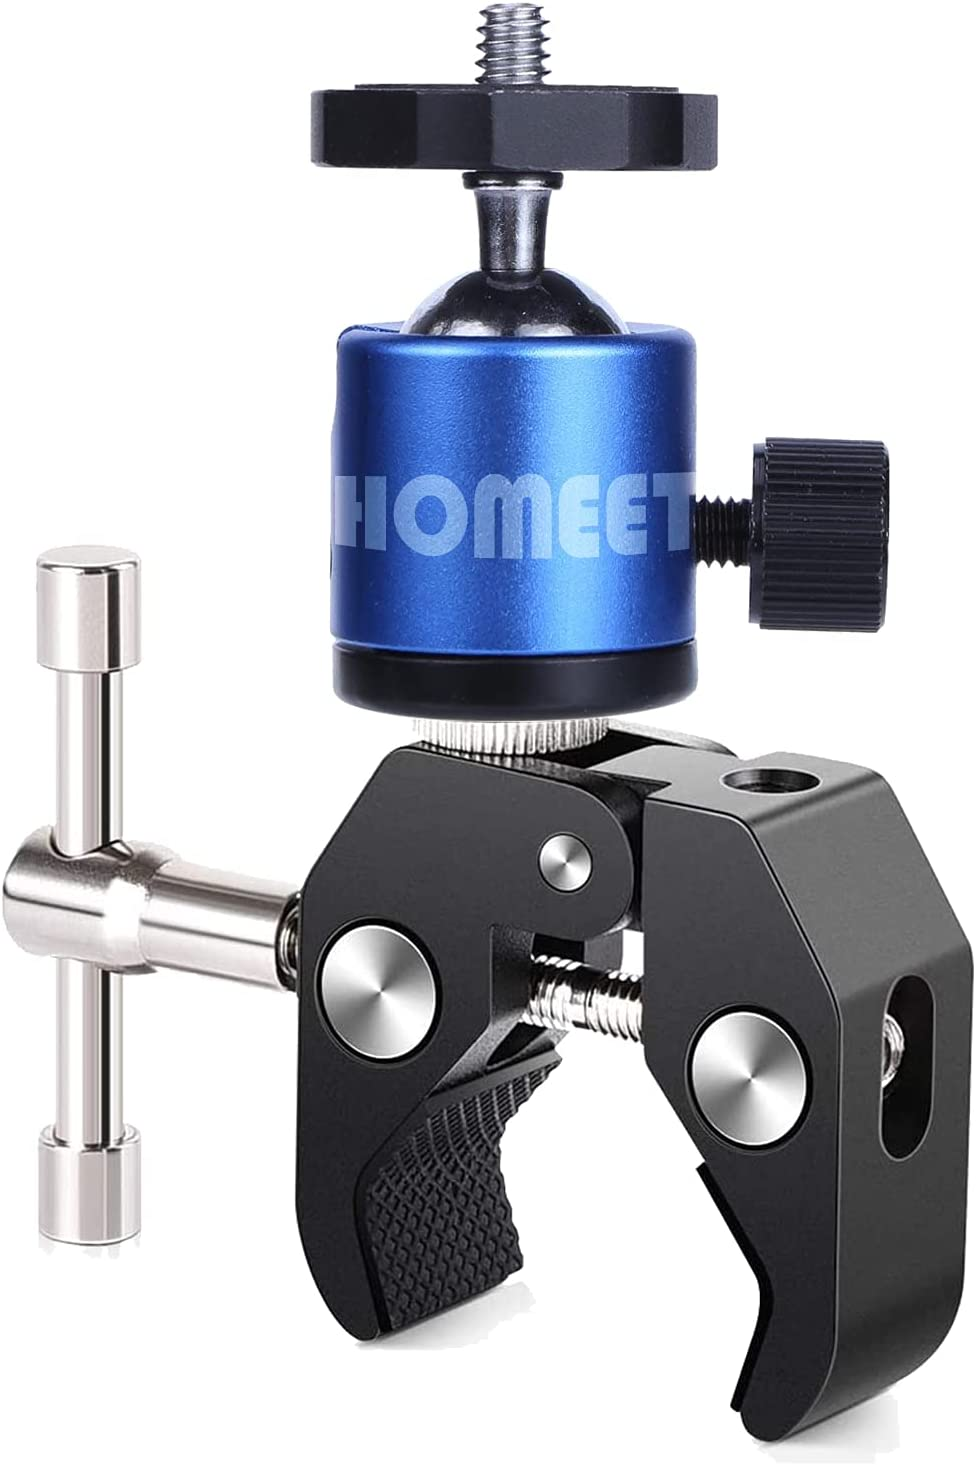 Homeet Super NEW before selling Clamp Mount Ballhead Stands Arm Metal Luxury goods wit Magic